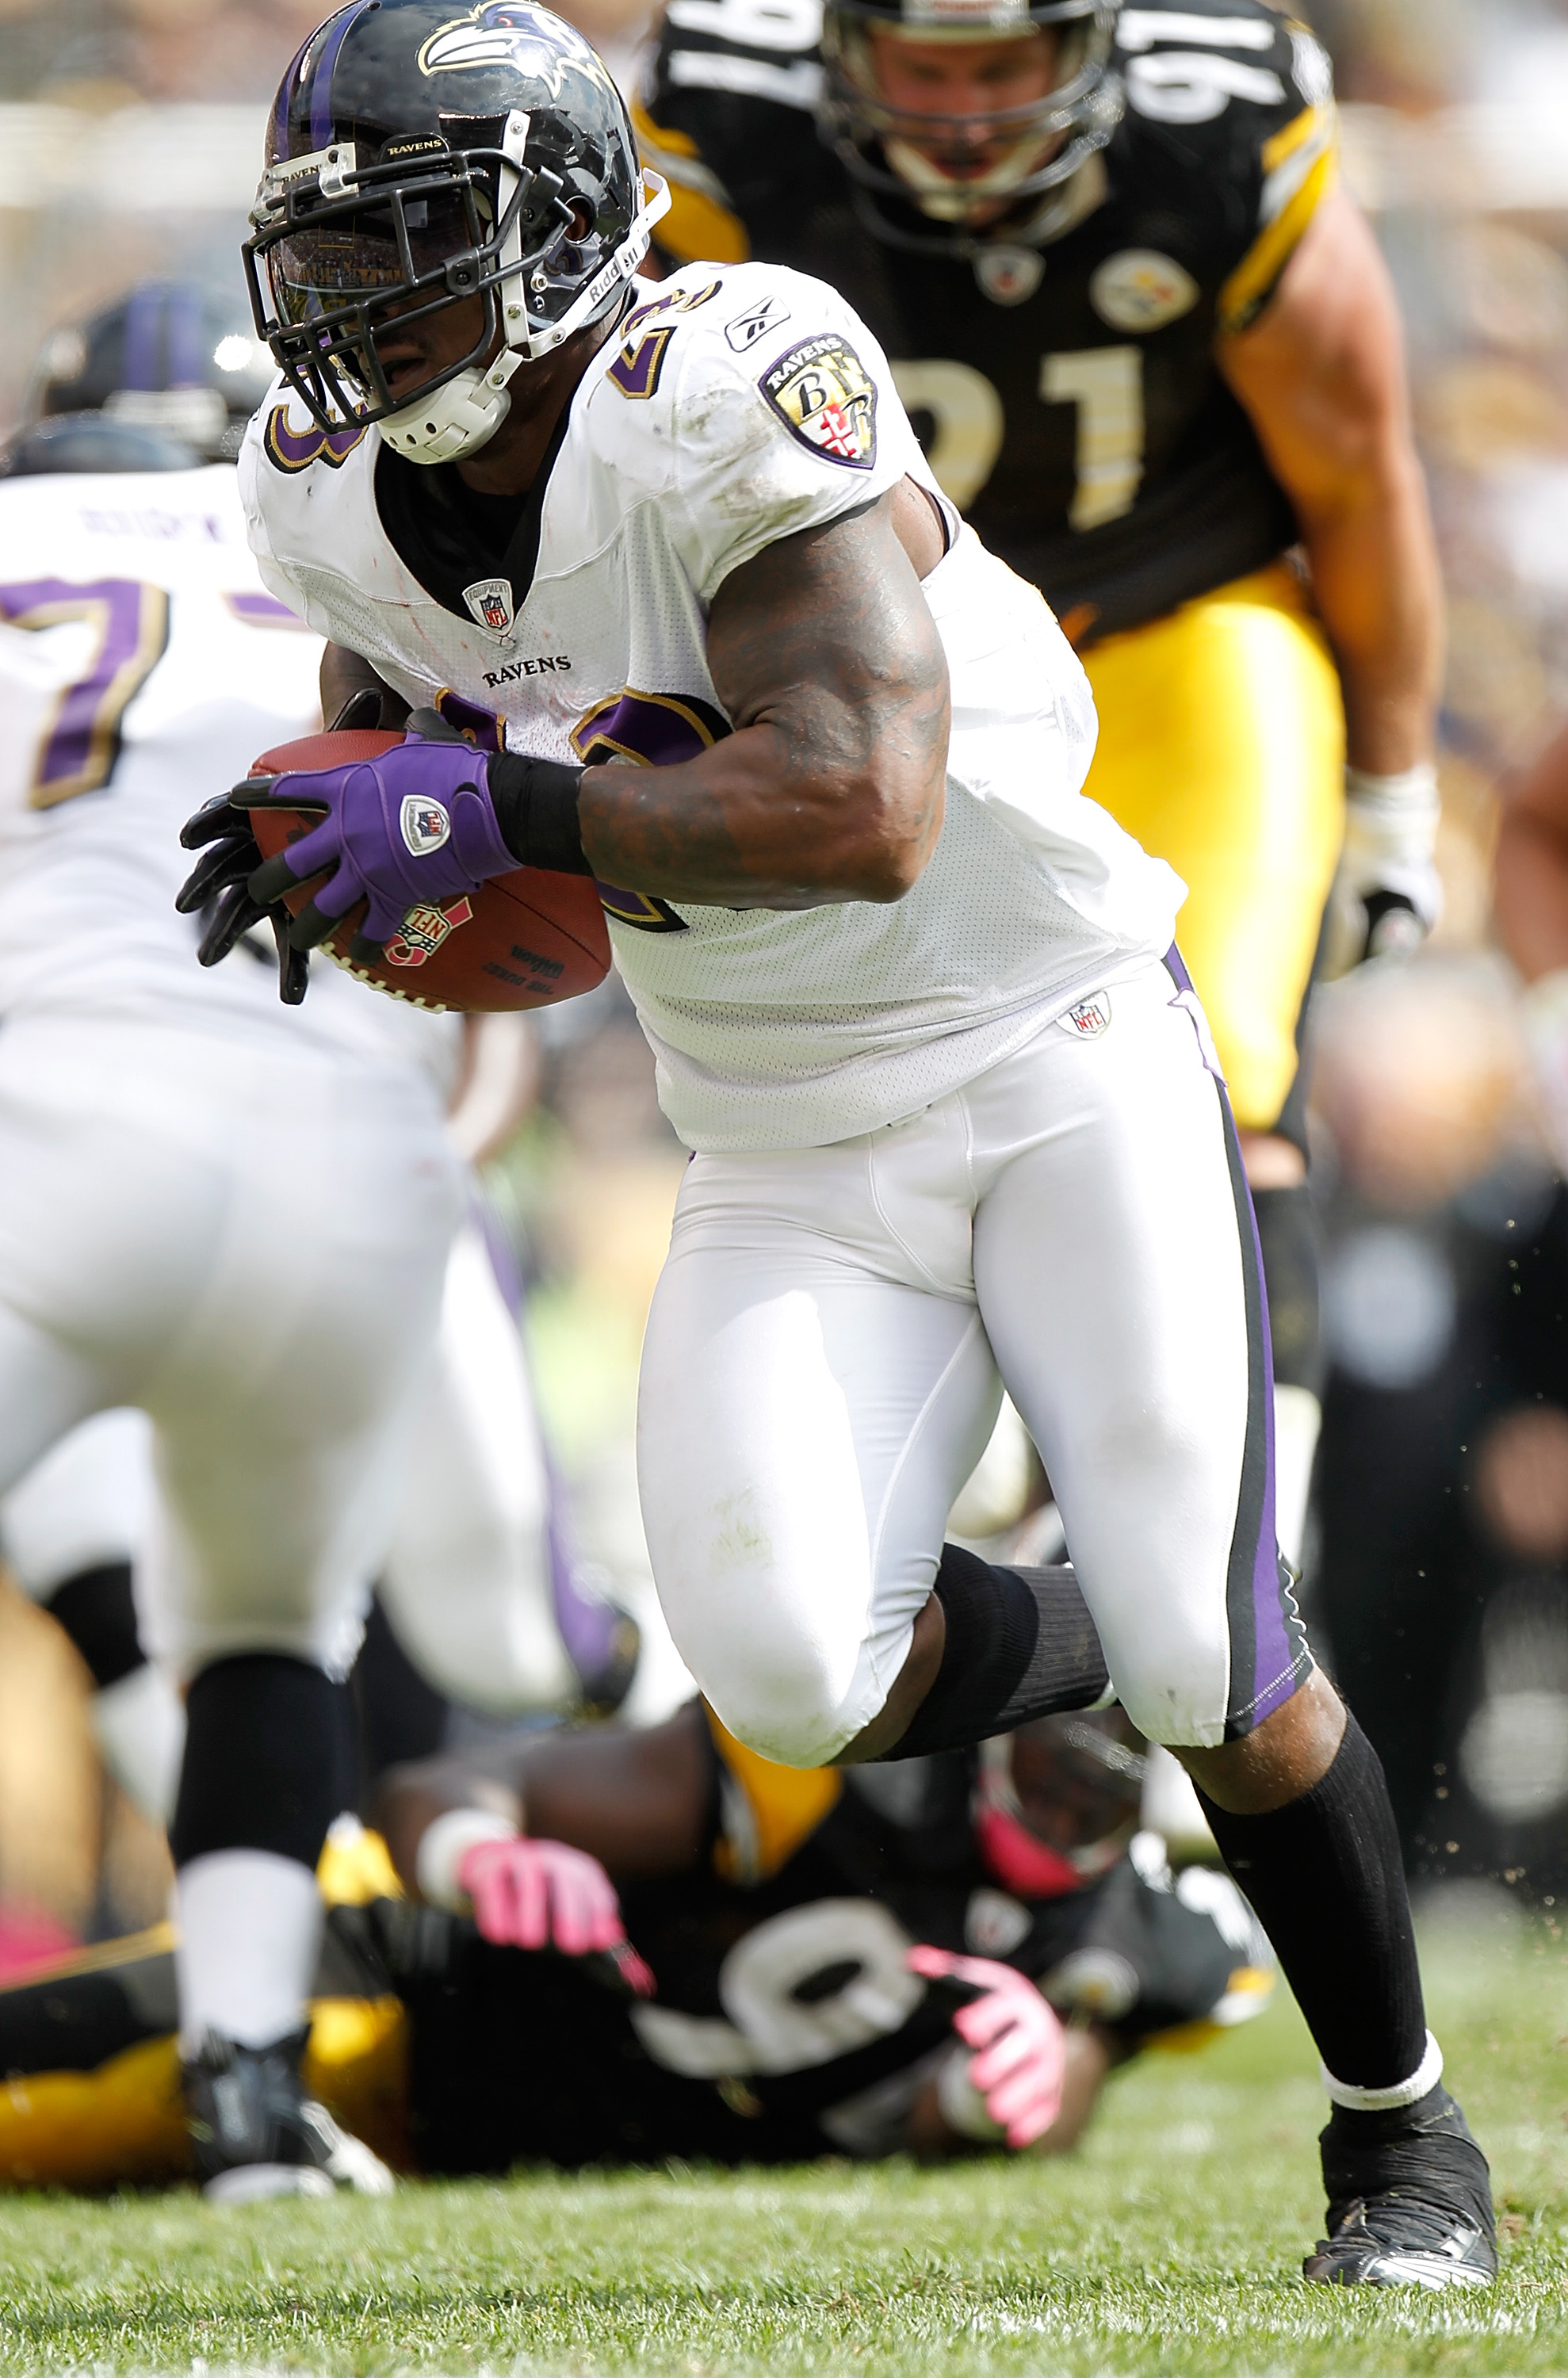 PITTSBURGH - OCTOBER 03: Willis McGahee #25 of the Baltimore Ravens carries the ball during the game against the Pittsburgh Steelers on October 3, 2010 at Heinz Field in Pittsburgh, Pennsylvania. (Photo by Gregory Shamus/Getty Images)